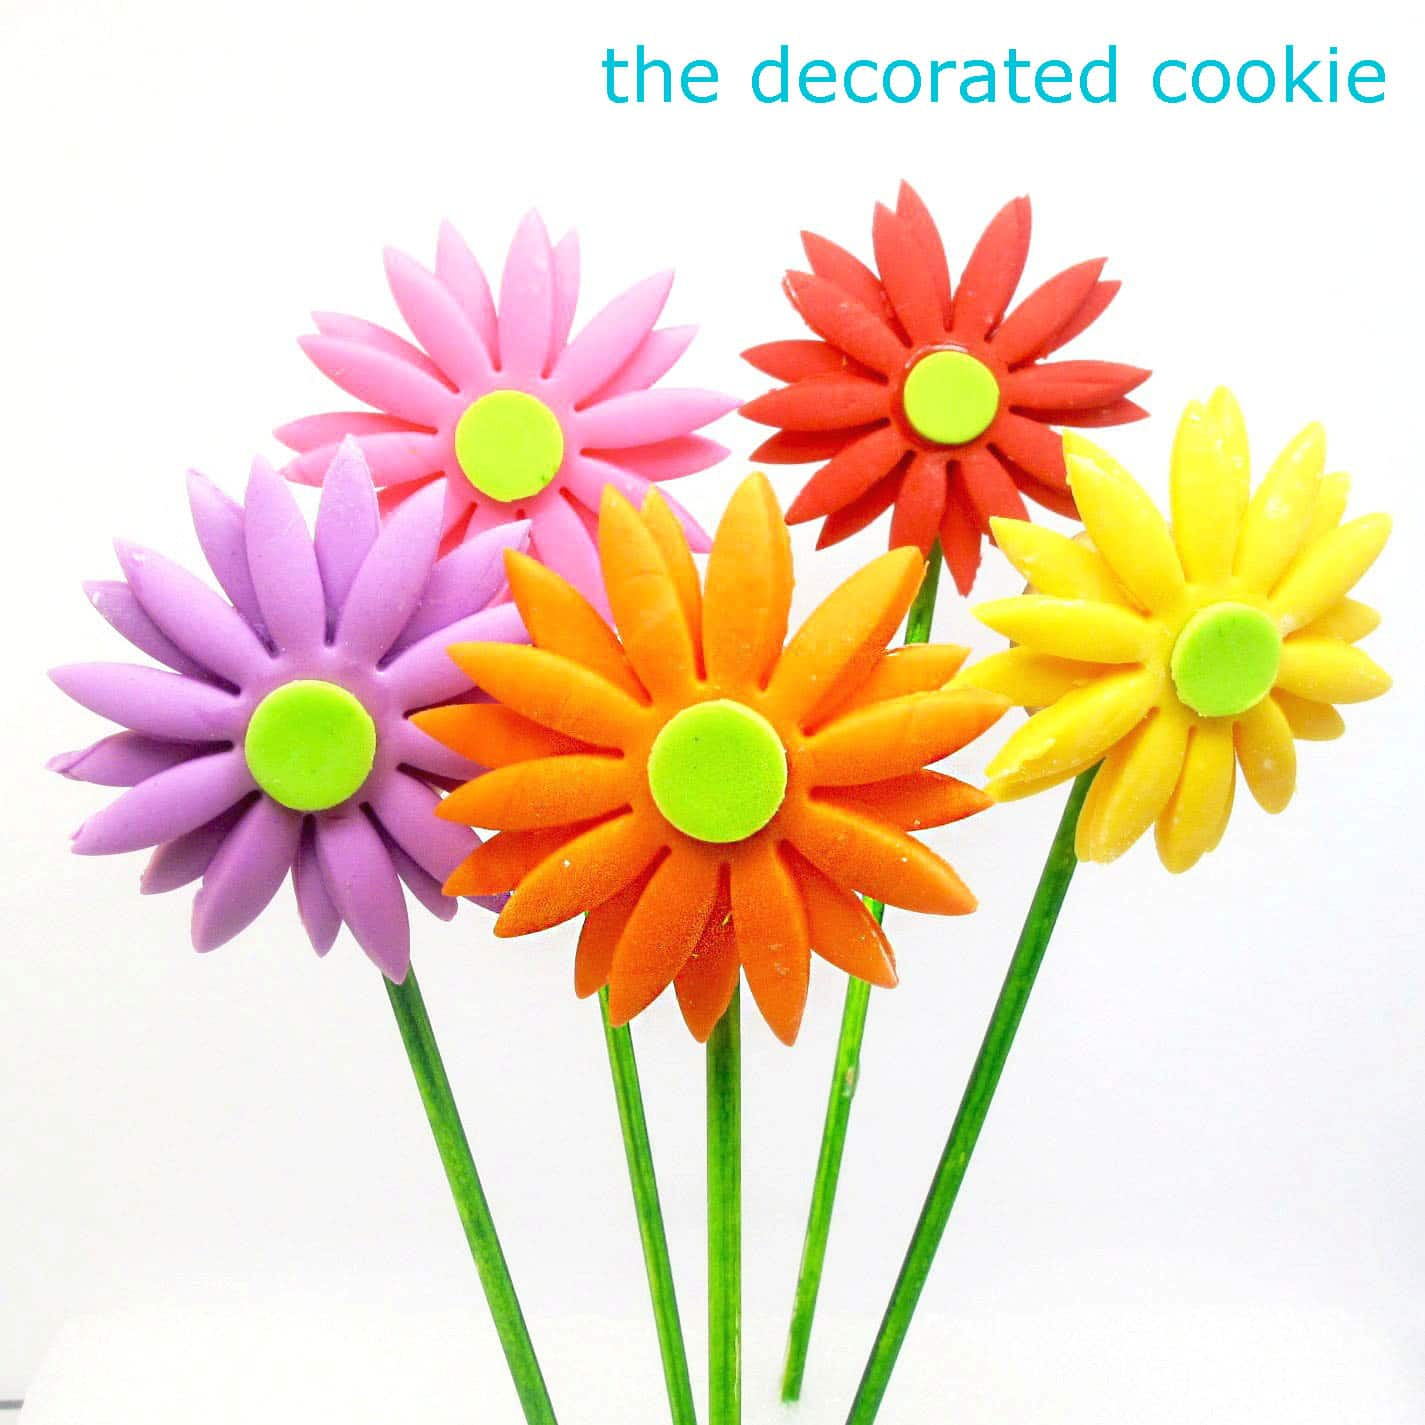 ... Daisy Cookies Fondant gerbera daisy cookie pops - the decorated cookie